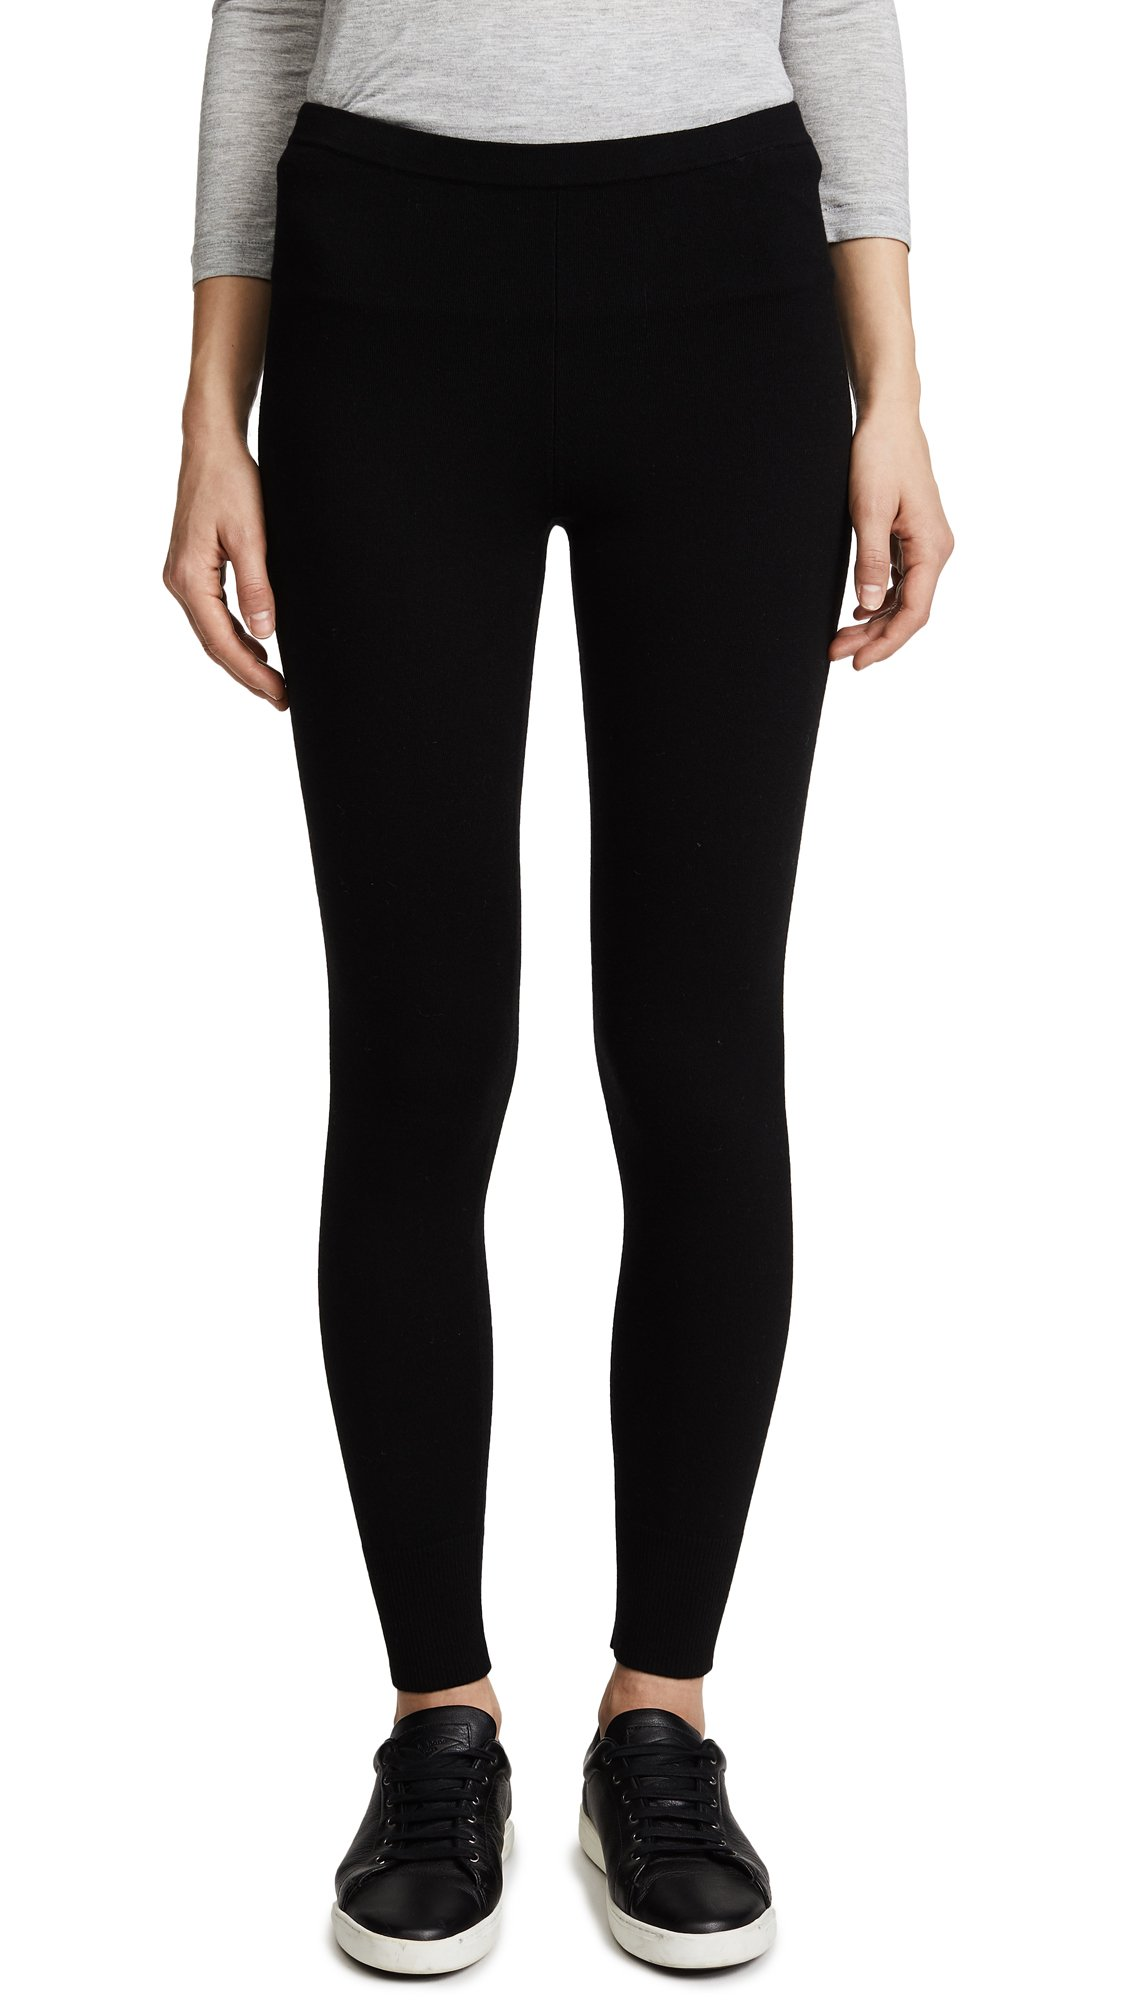 Vince Women's Leggings, Black, Large